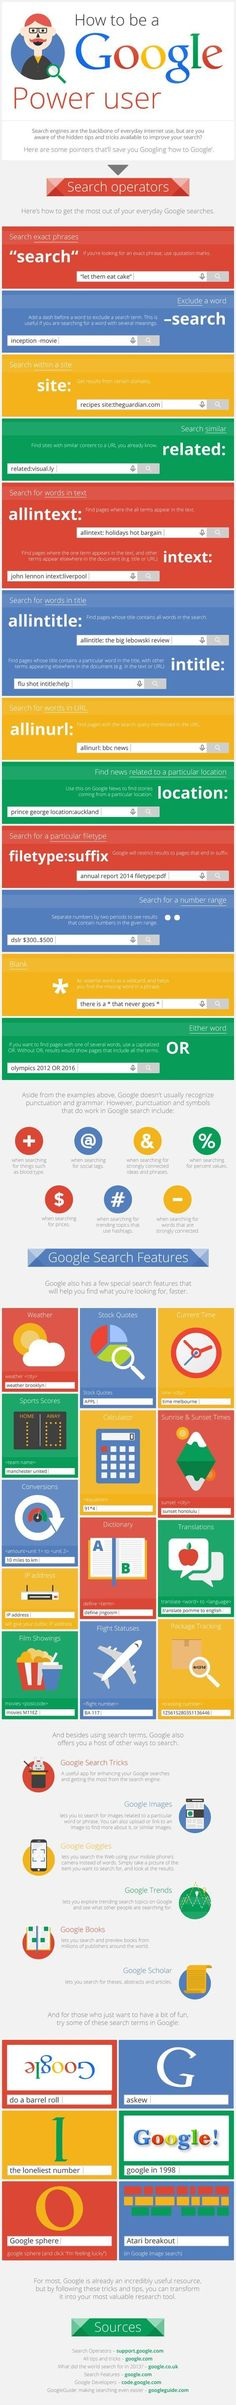 how to get the most out of your everyday #Google searches - #infographic